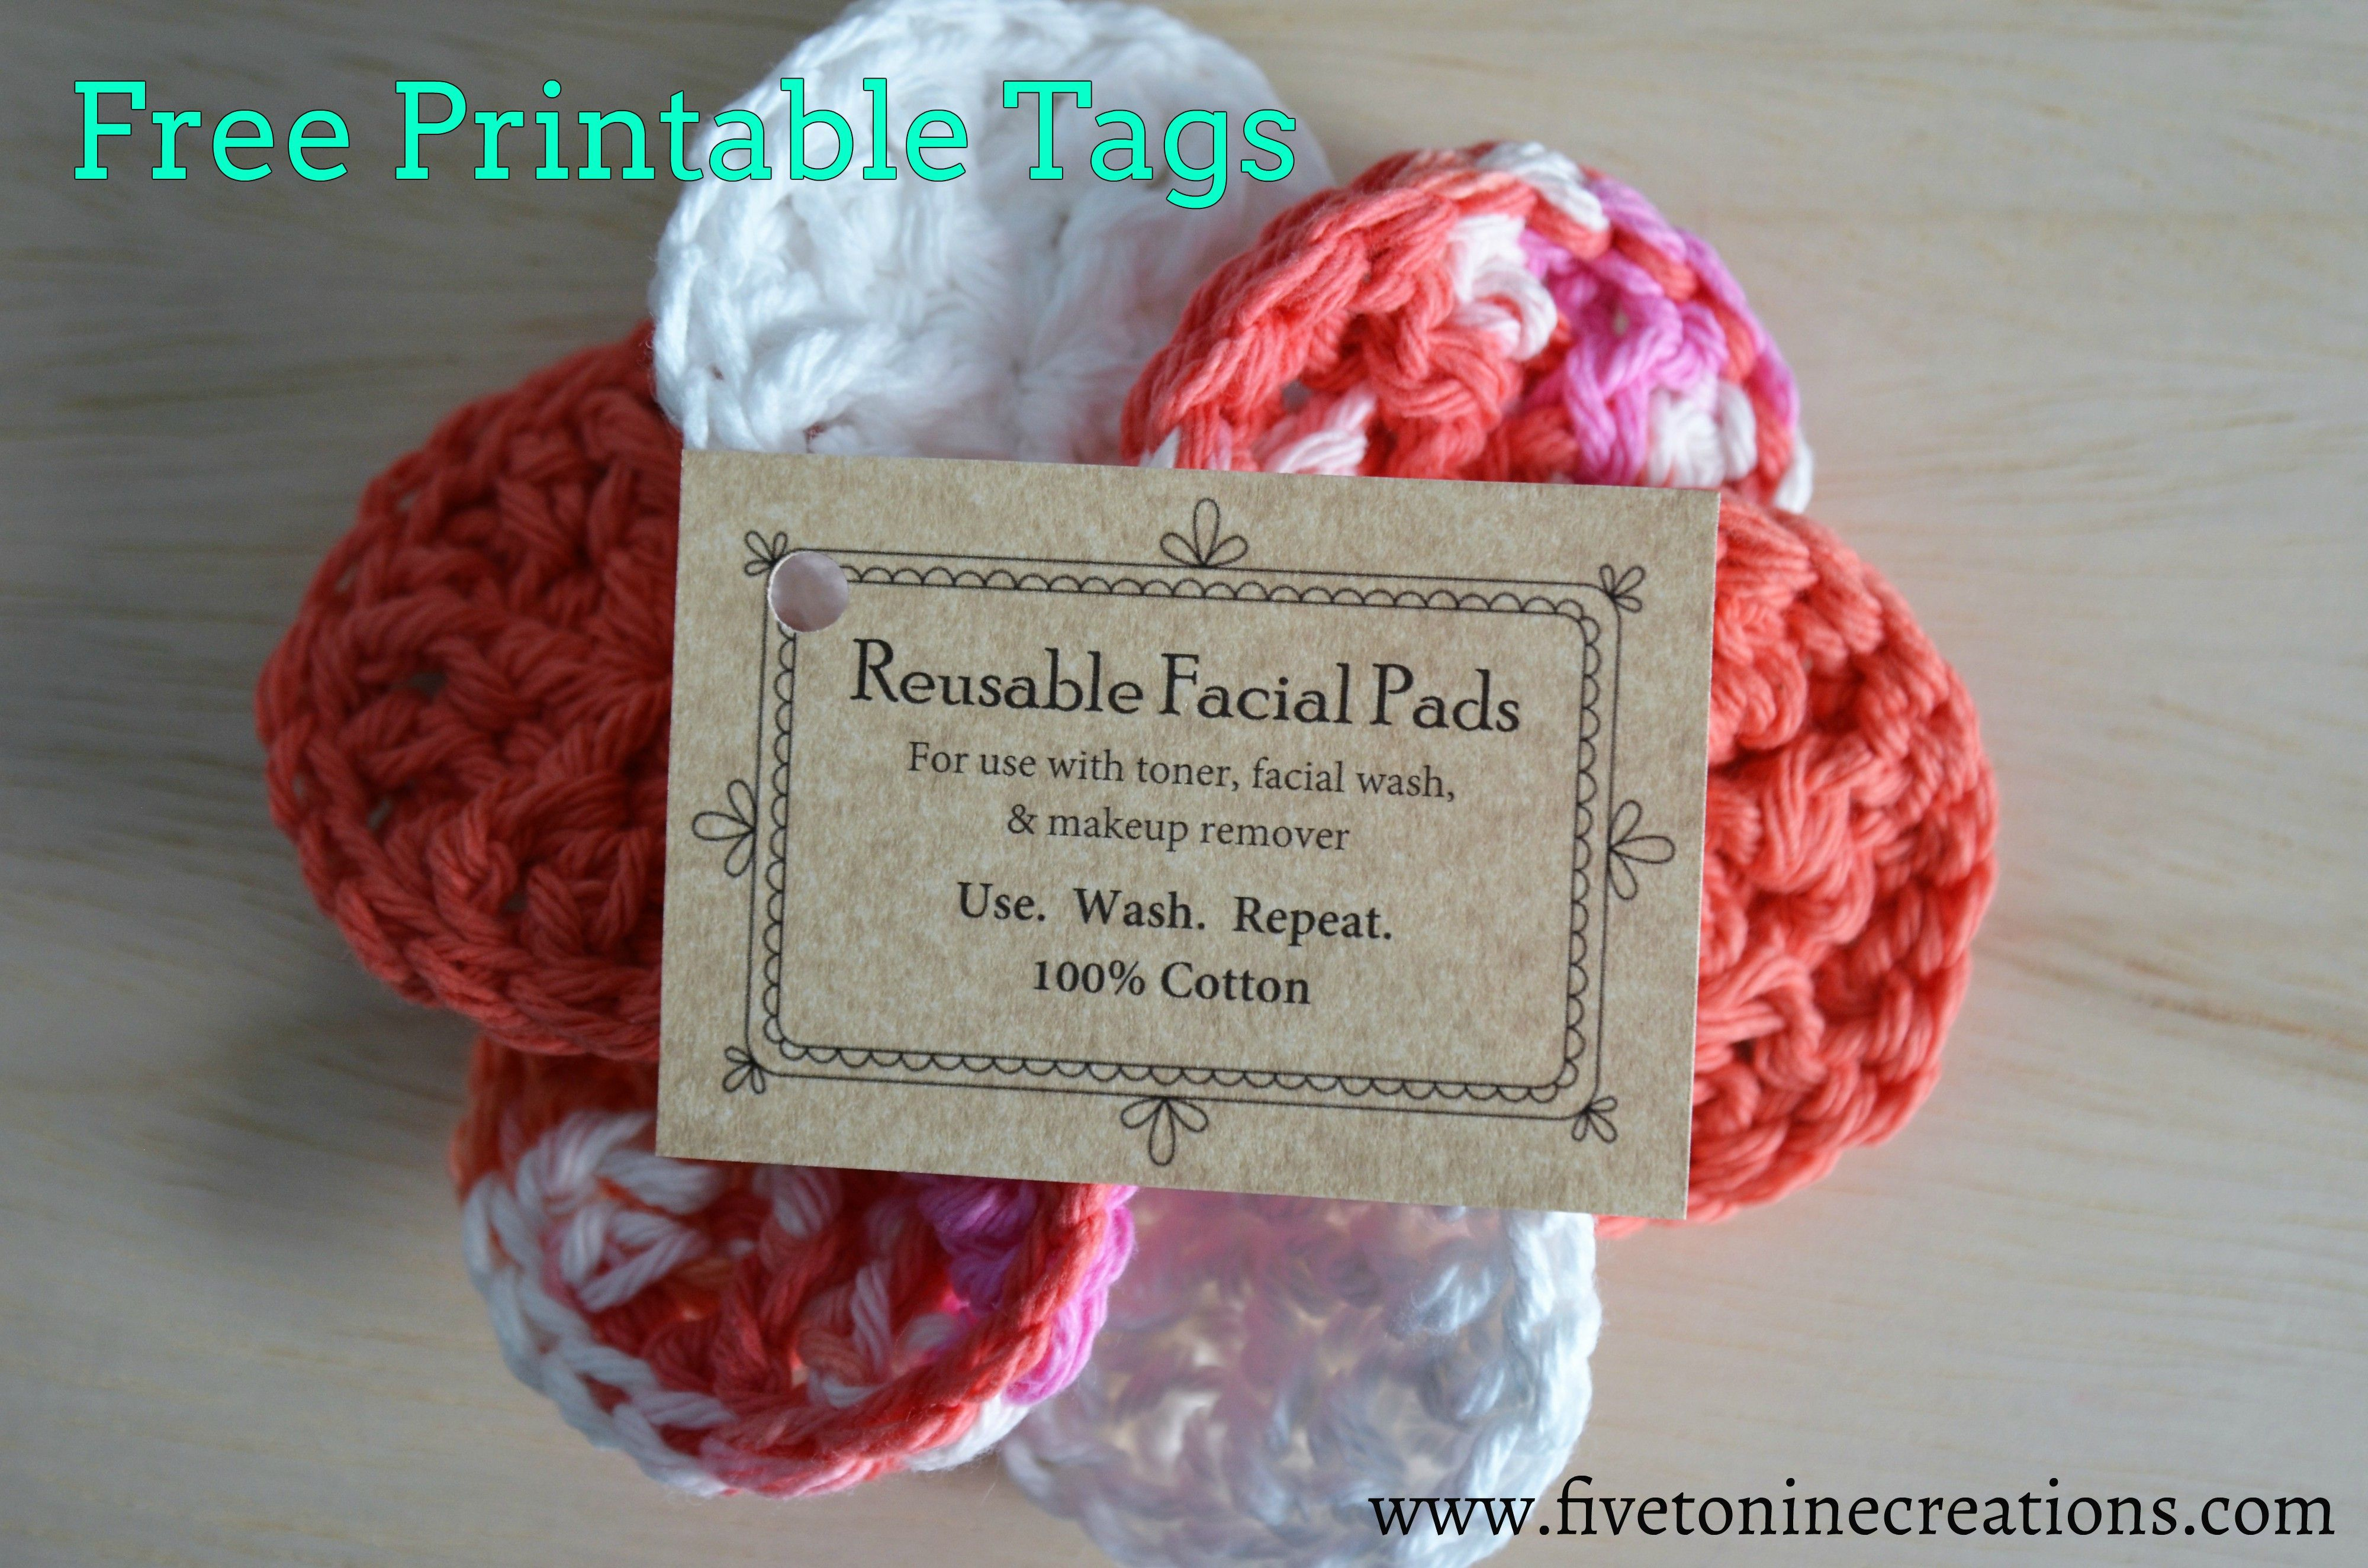 Free Printable Tags For Face Scrubby Pads Comes With Free Crochet